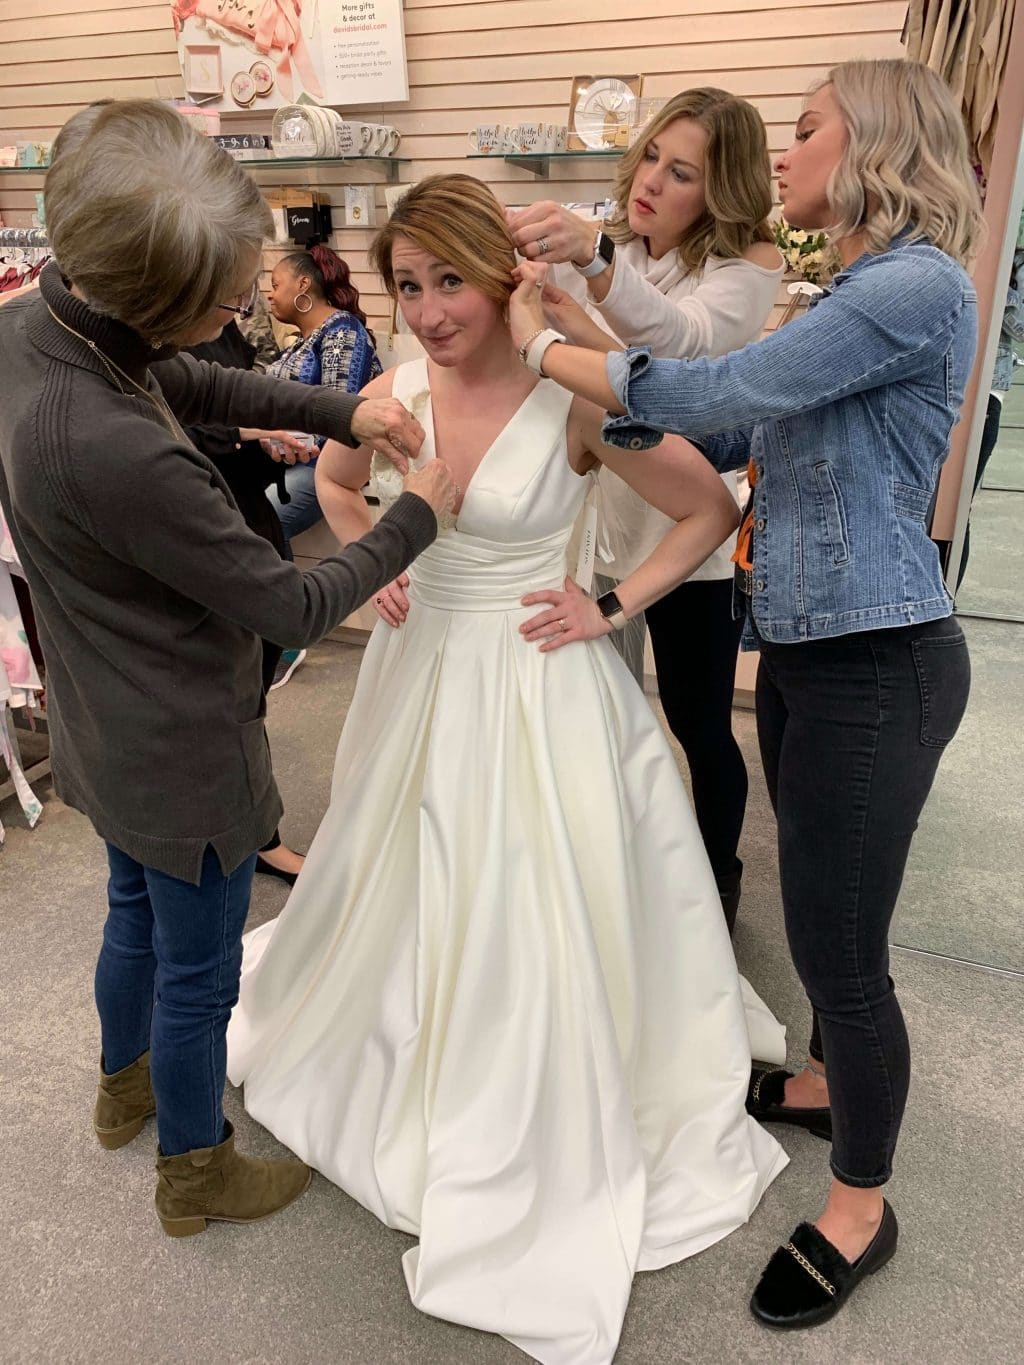 Wedding Dress Shopping, Sisters, Stilettos and Diapers